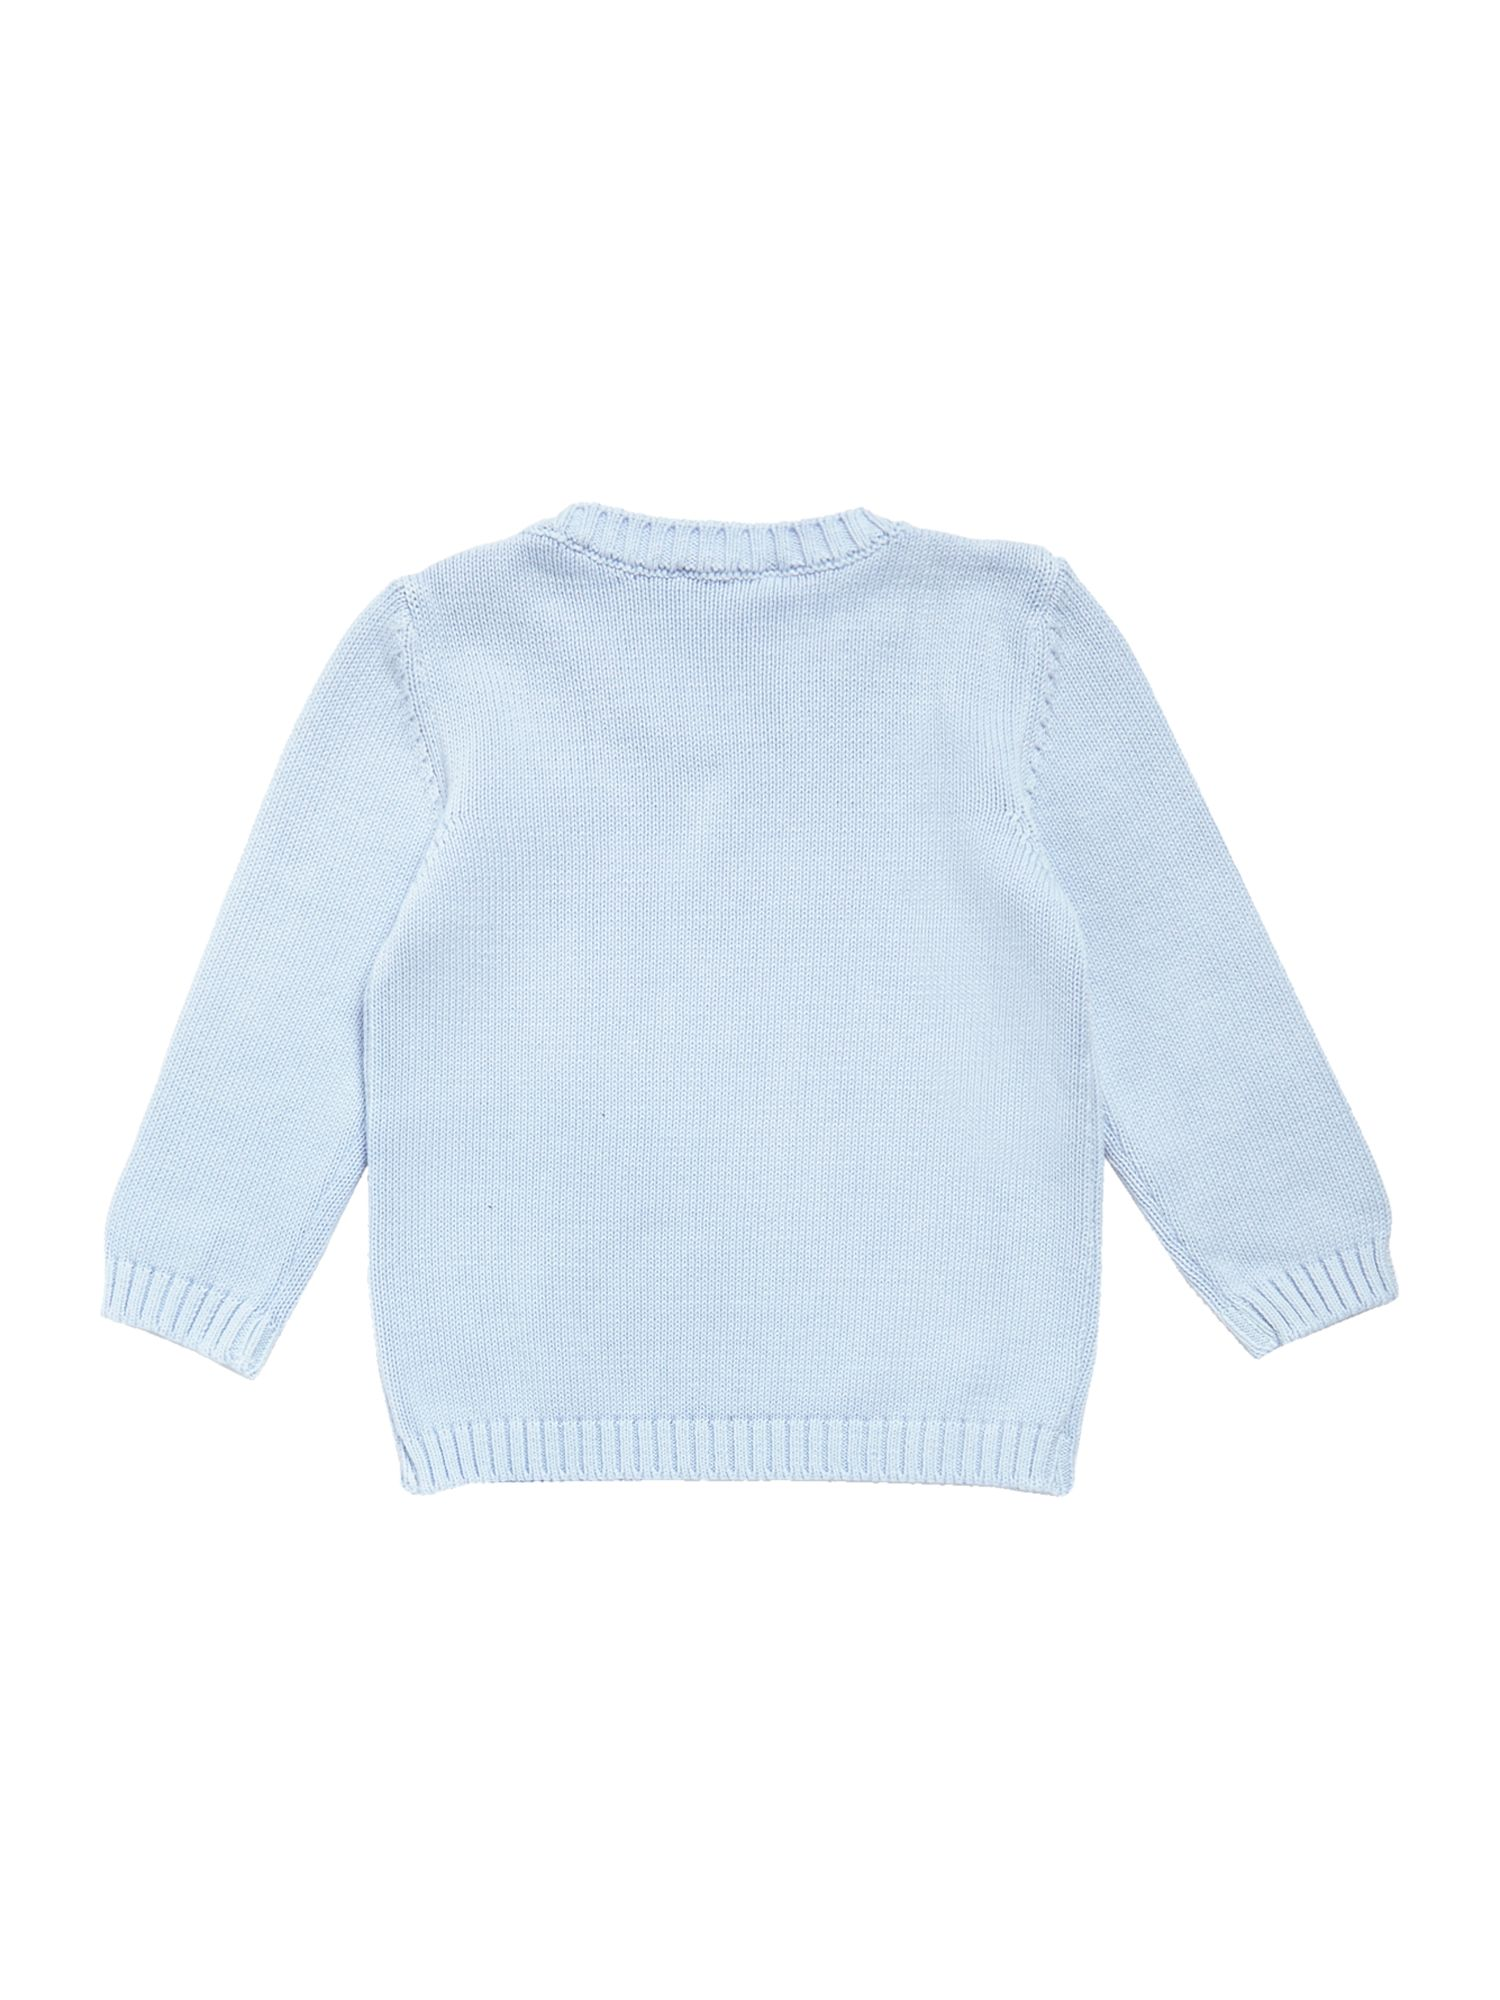 Boy`s logo knitted top